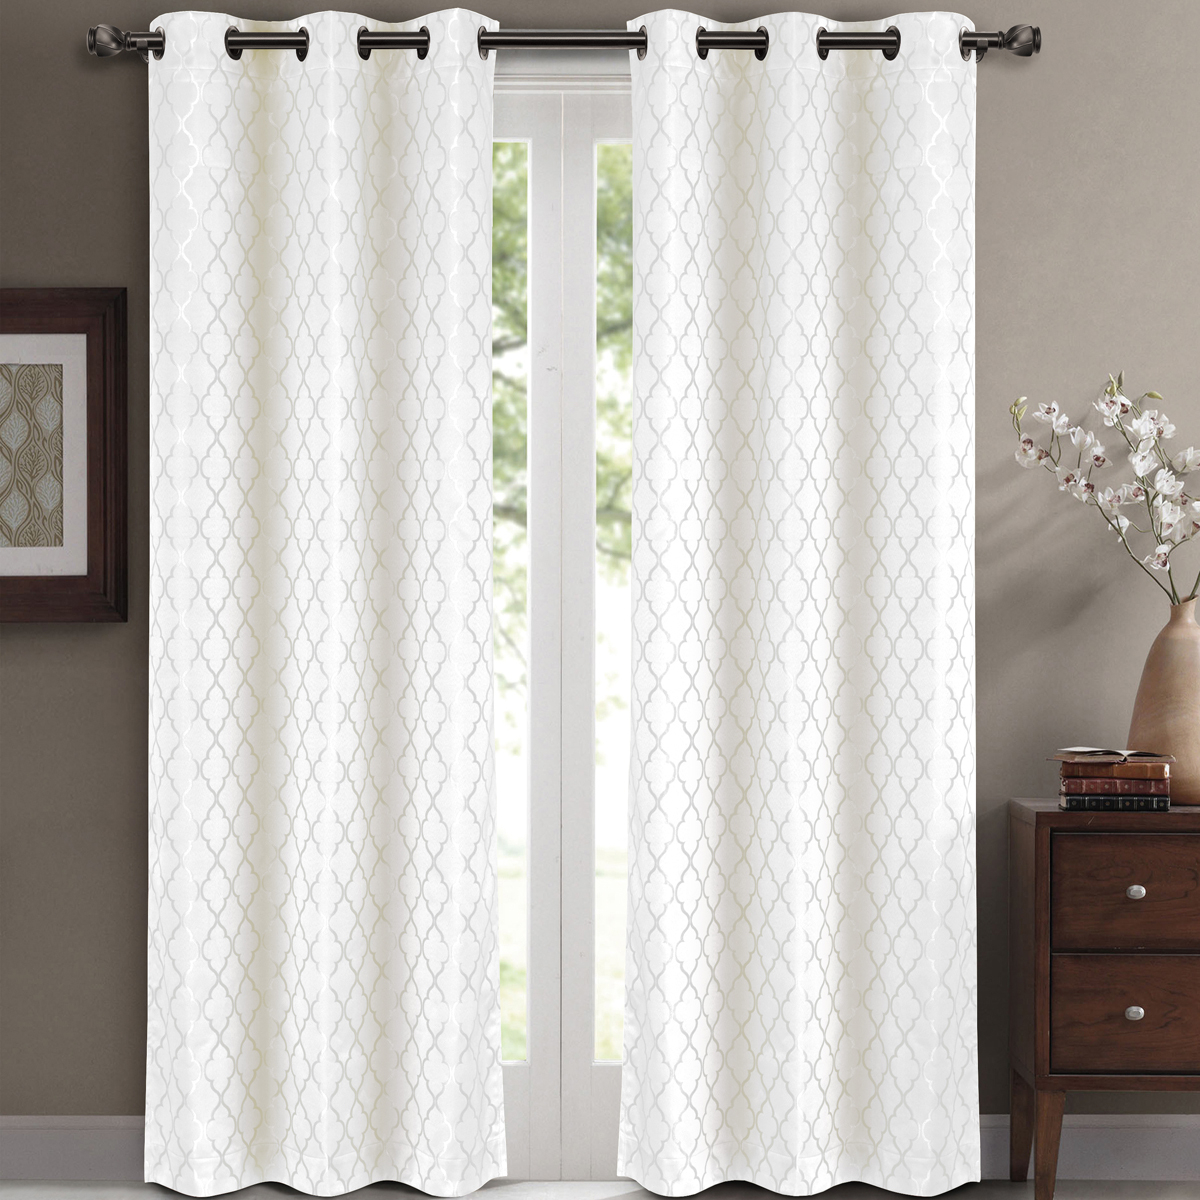 "Pair ( Set Of 2) Willow Thermal Insulated Blackout Curtain Panels – White – W84 X L63"" – Walmart In Insulated Blackout Grommet Window Curtain Panel Pairs (View 17 of 20)"